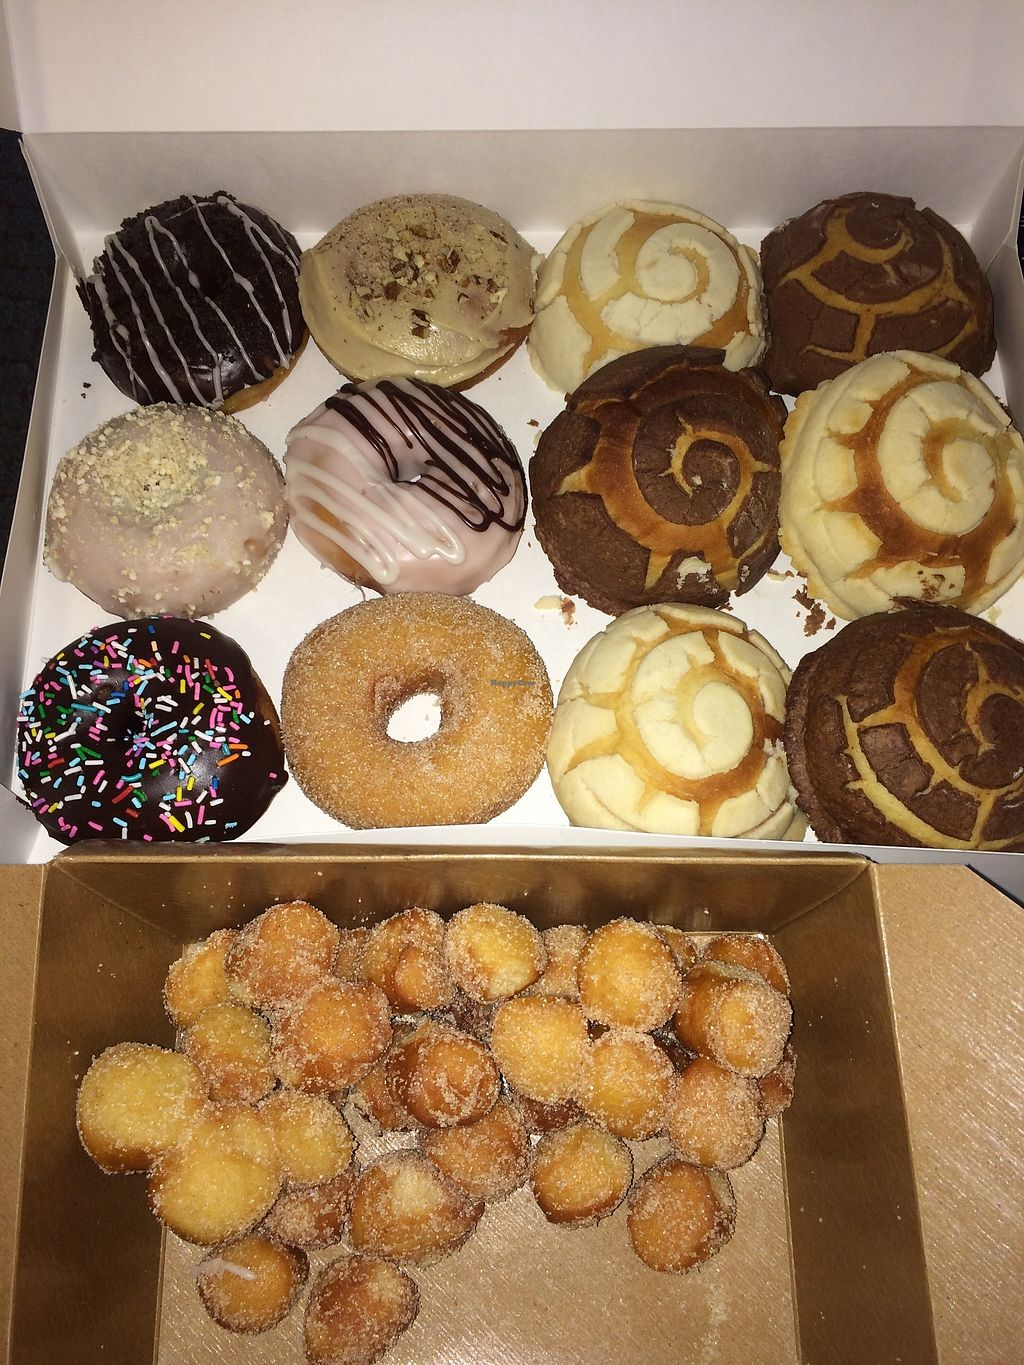 """Photo of Sane Treats  by <a href=""""/members/profile/samirarojo"""">samirarojo</a> <br/>Donuts, conchas and donut holes! <br/> March 13, 2018  - <a href='/contact/abuse/image/89985/369977'>Report</a>"""